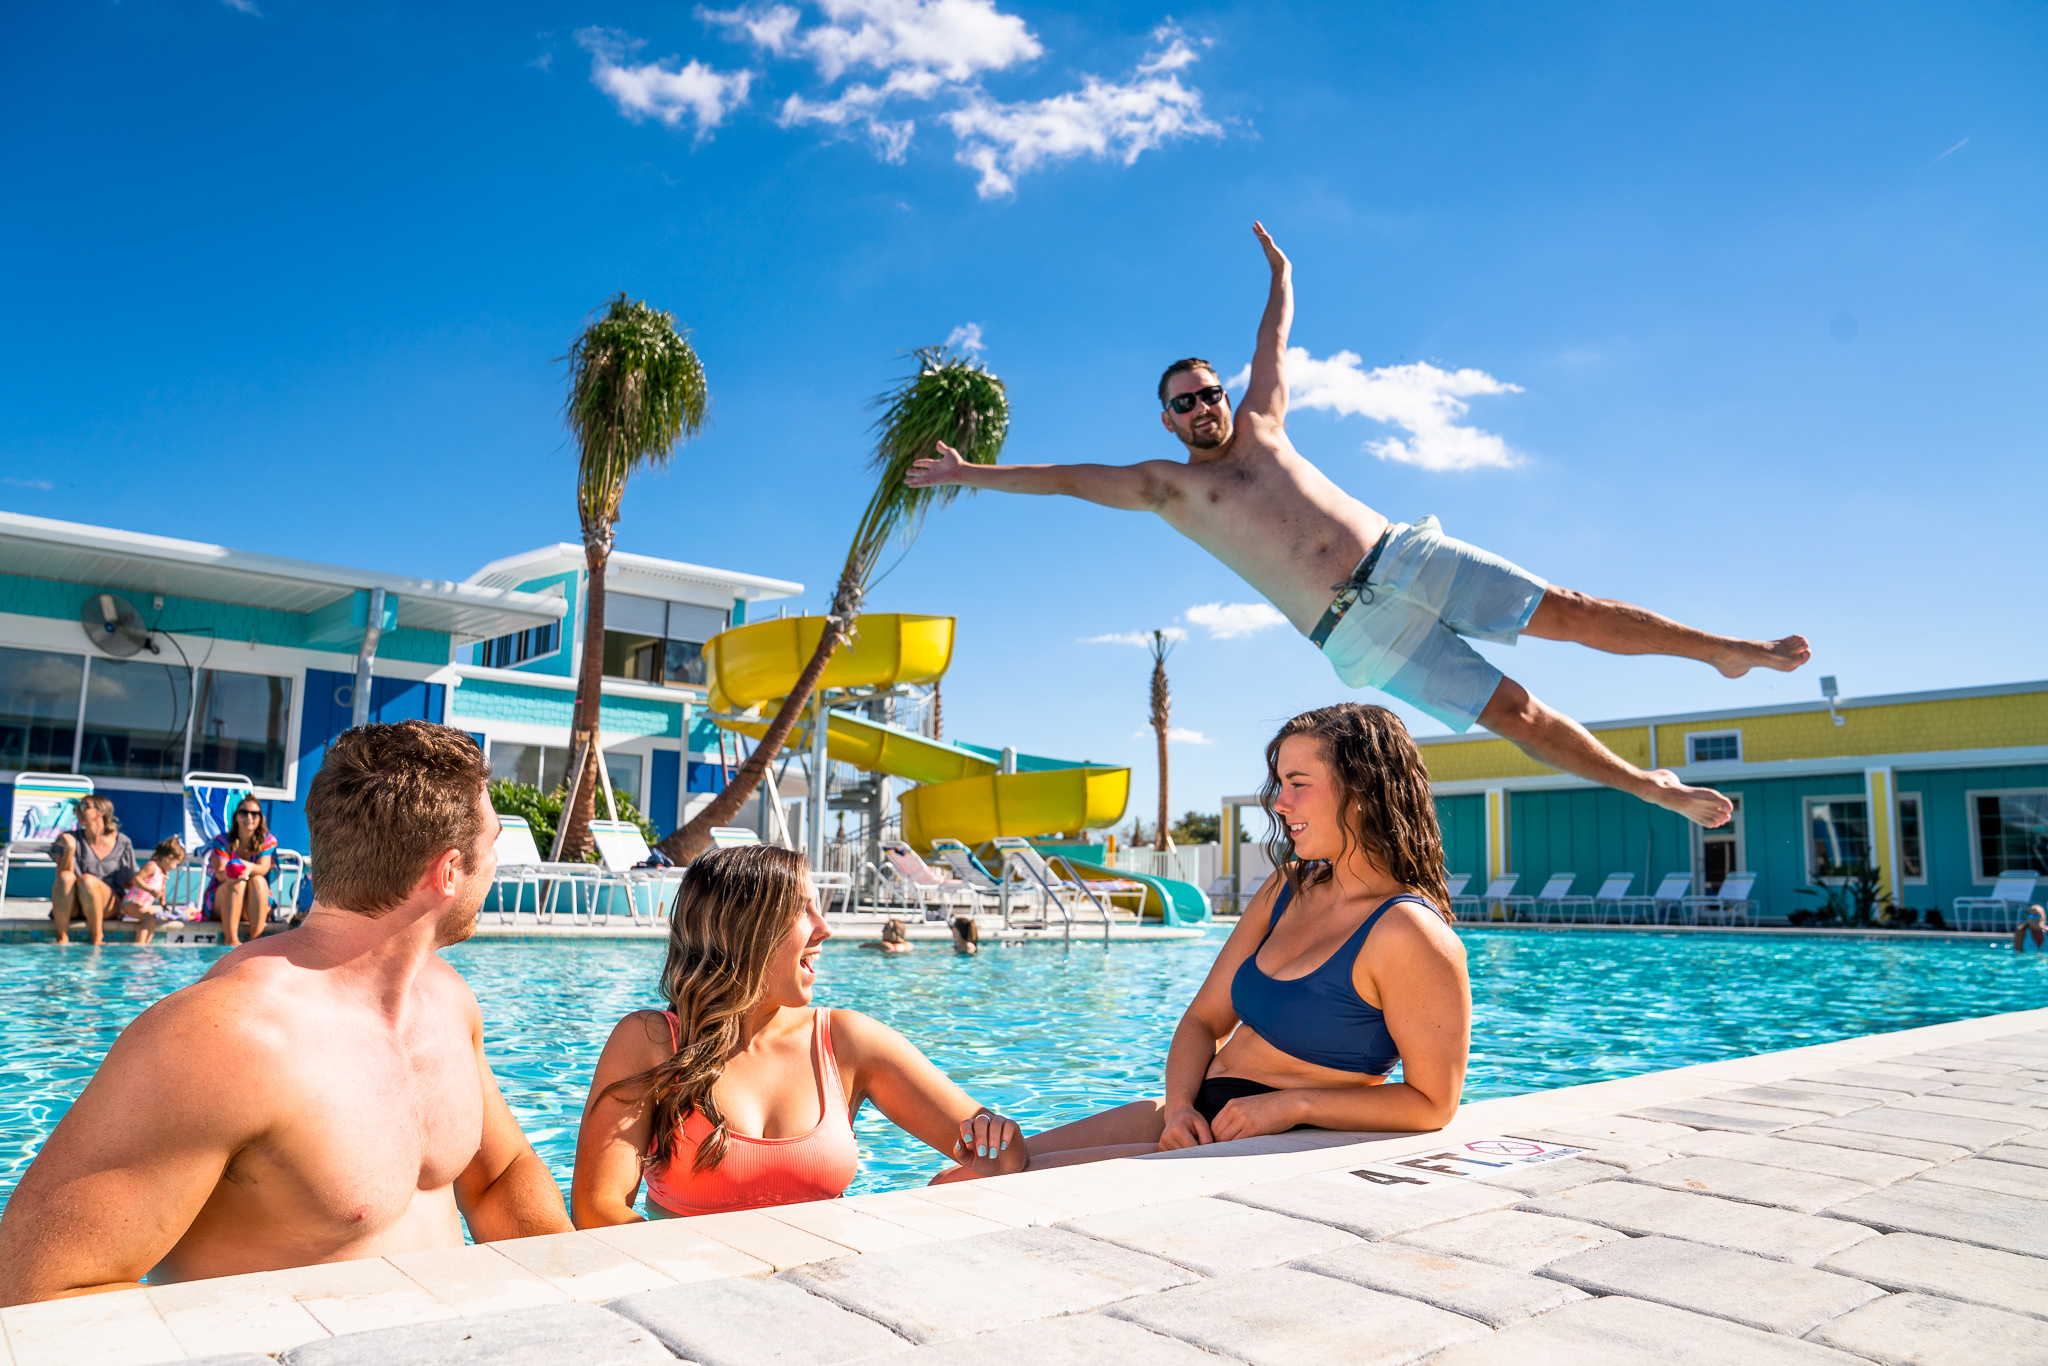 Poolside fun and activities